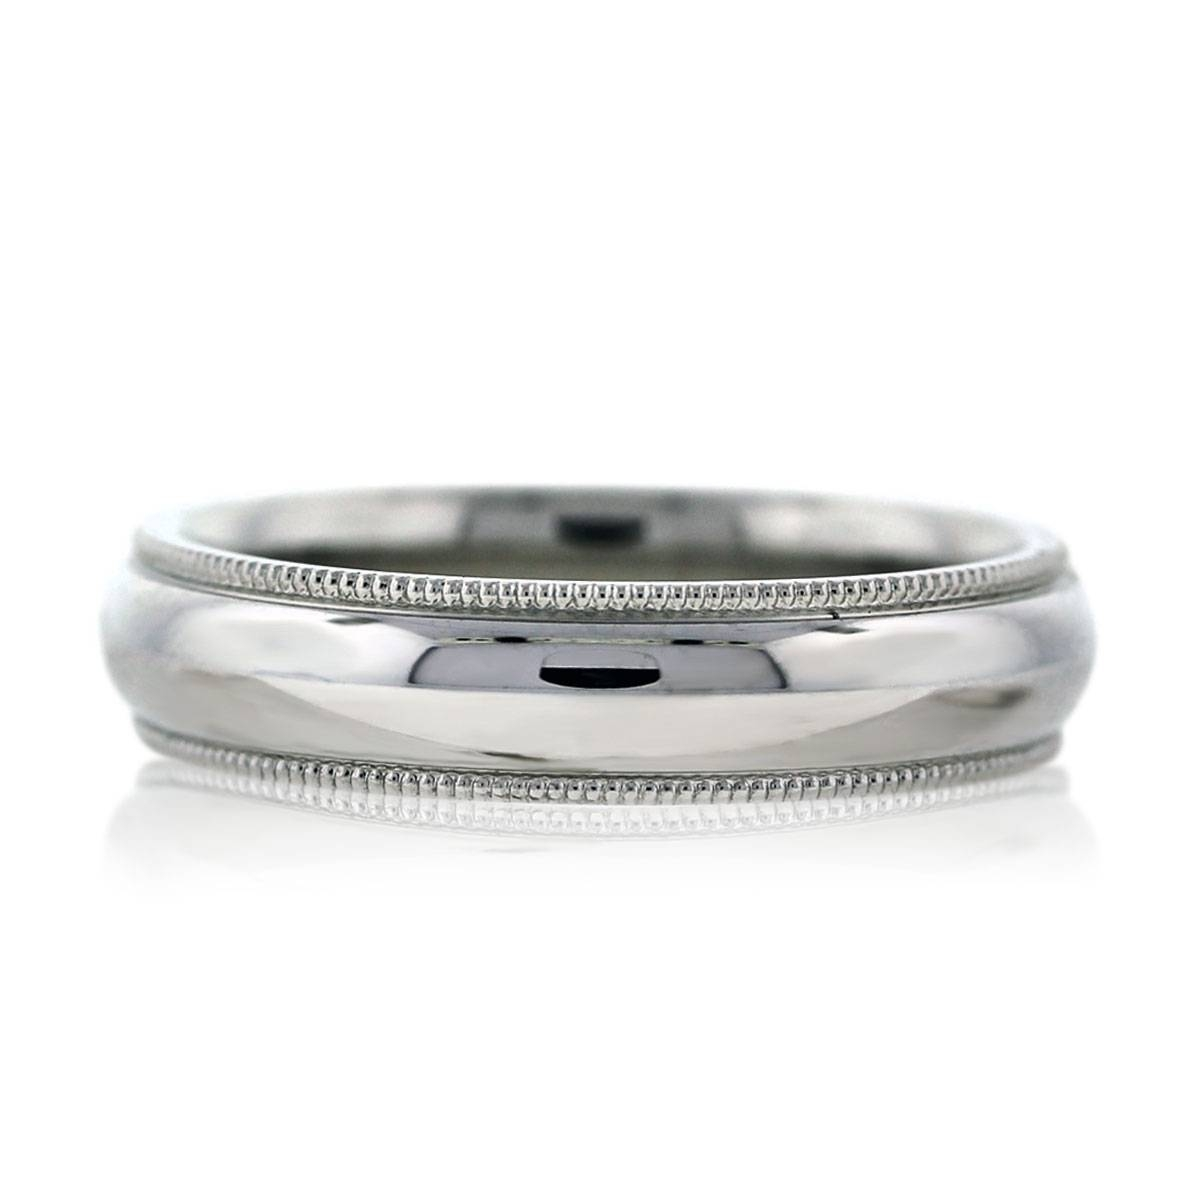 14K White Gold Milgrain Mens Wedding Band Ring Boca Raton Within David Yurman Men's Wedding Bands (View 3 of 15)